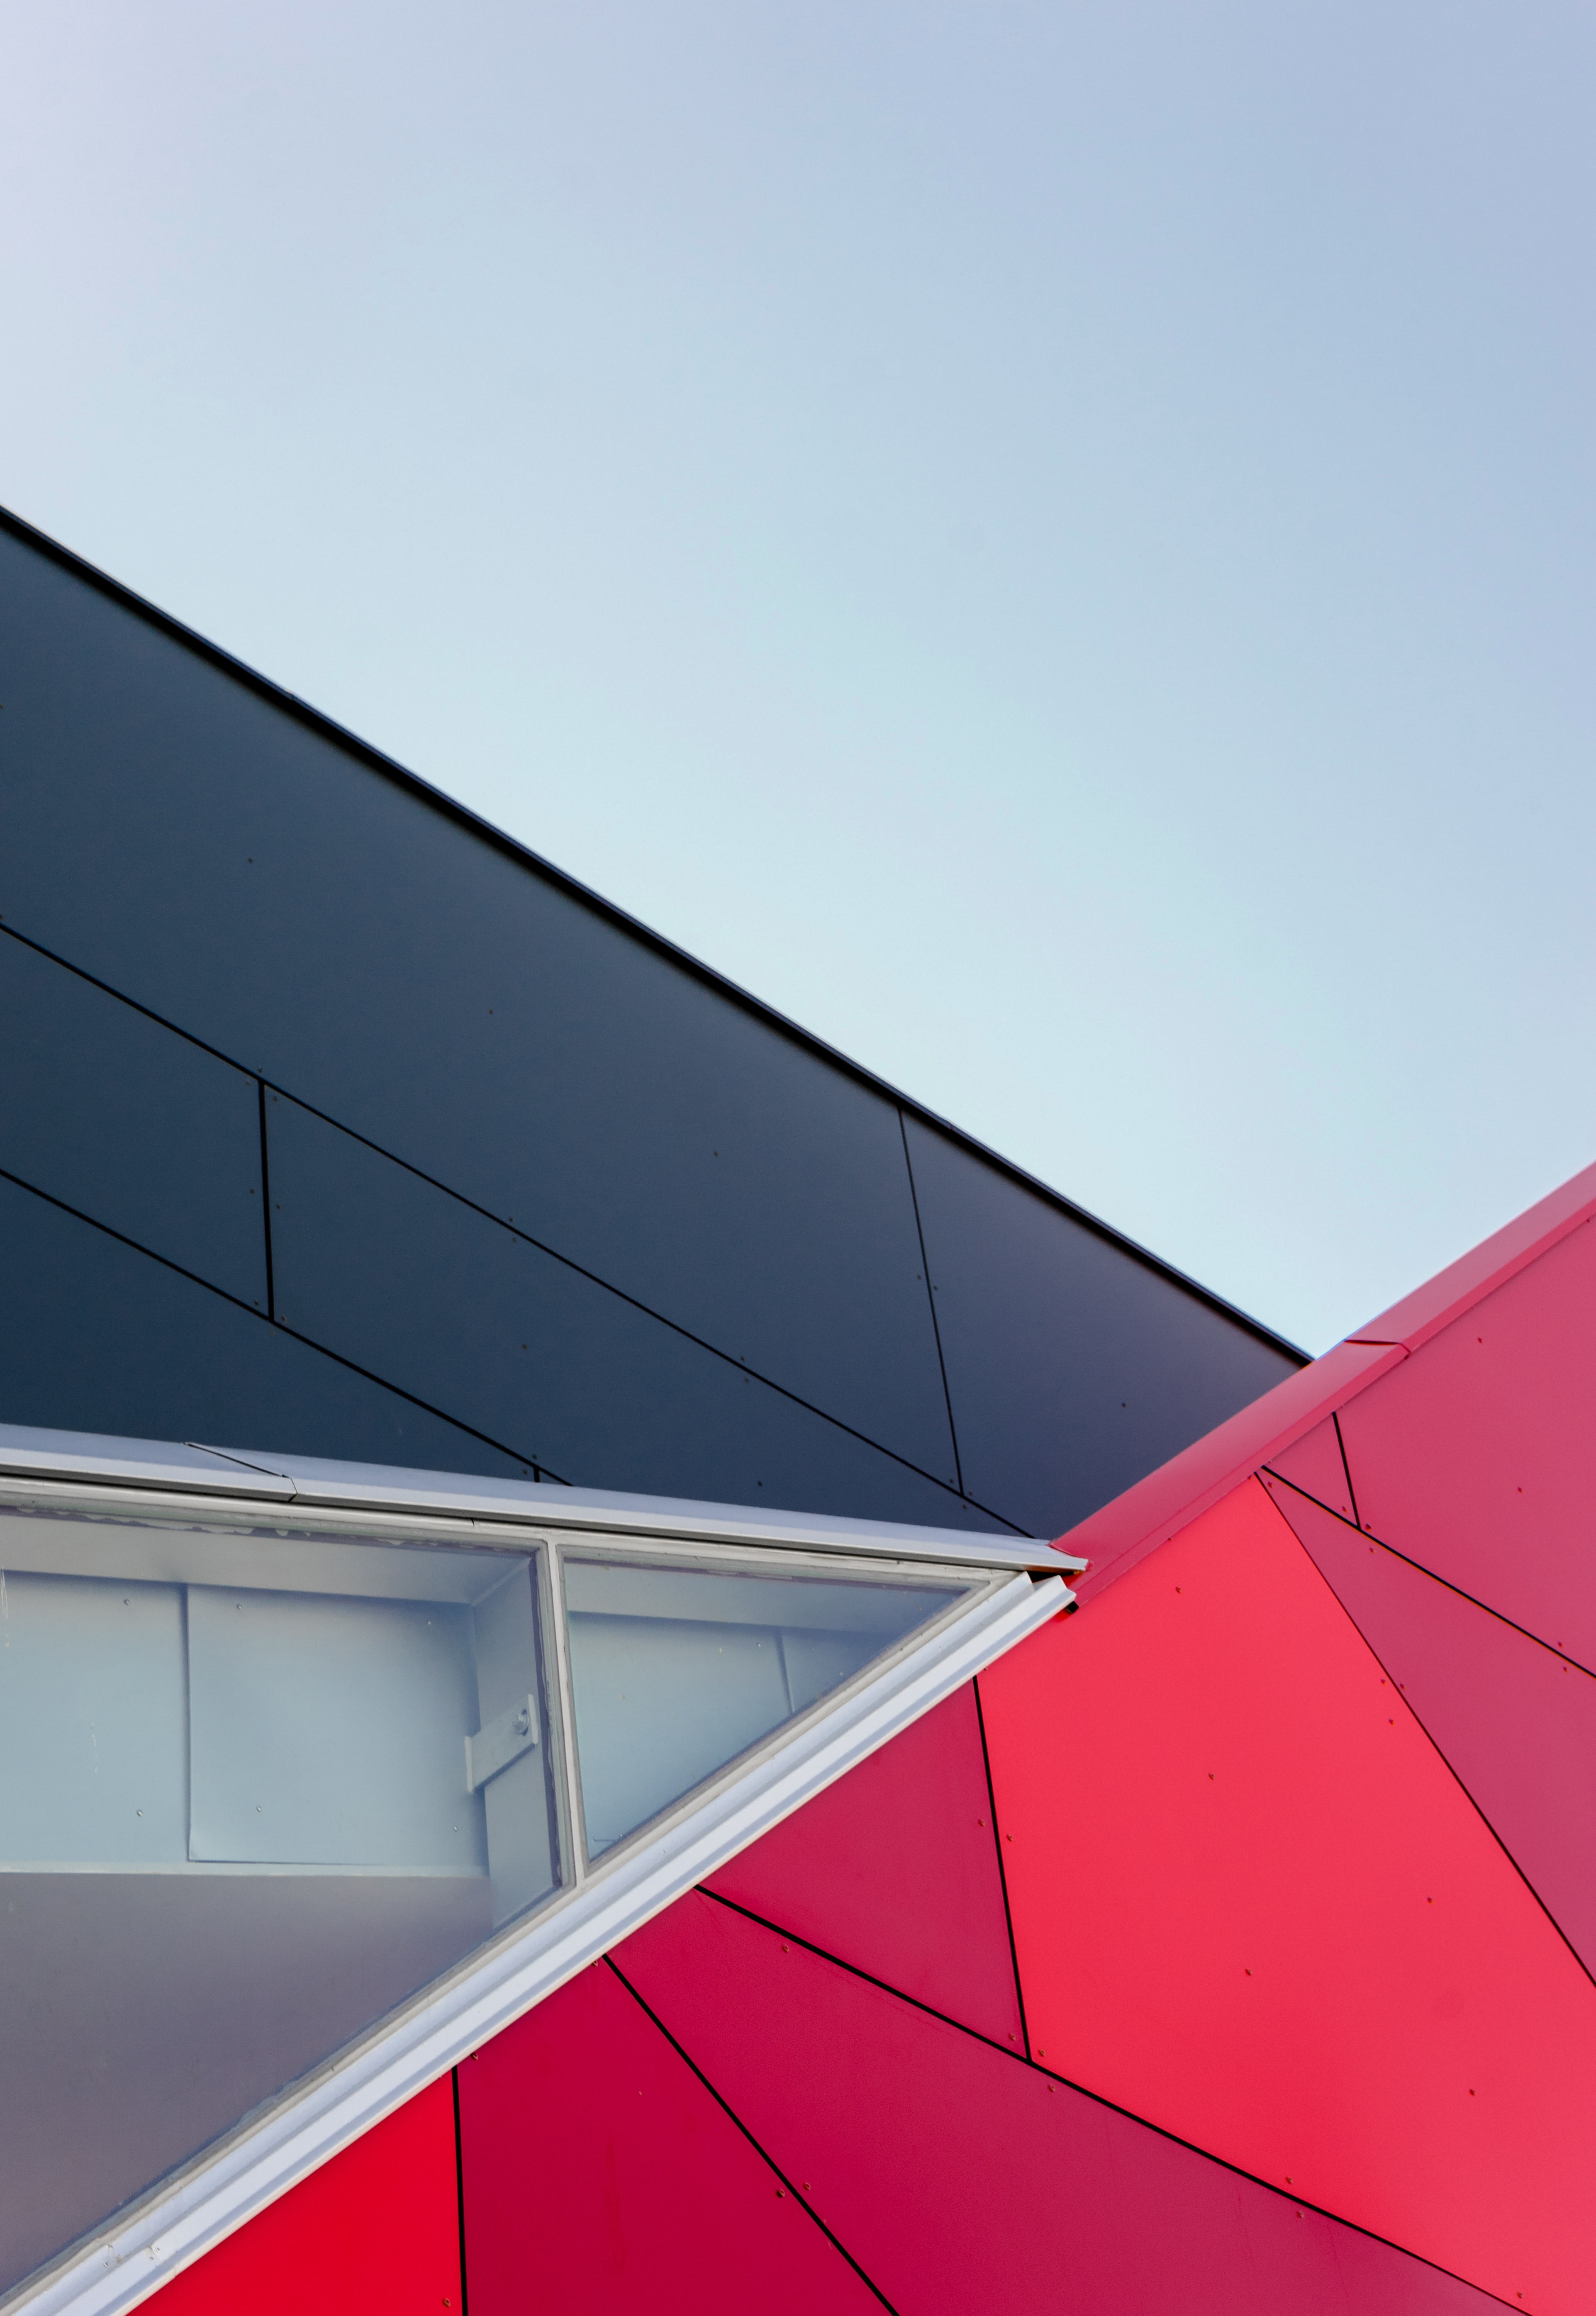 closeup photo of black and red building